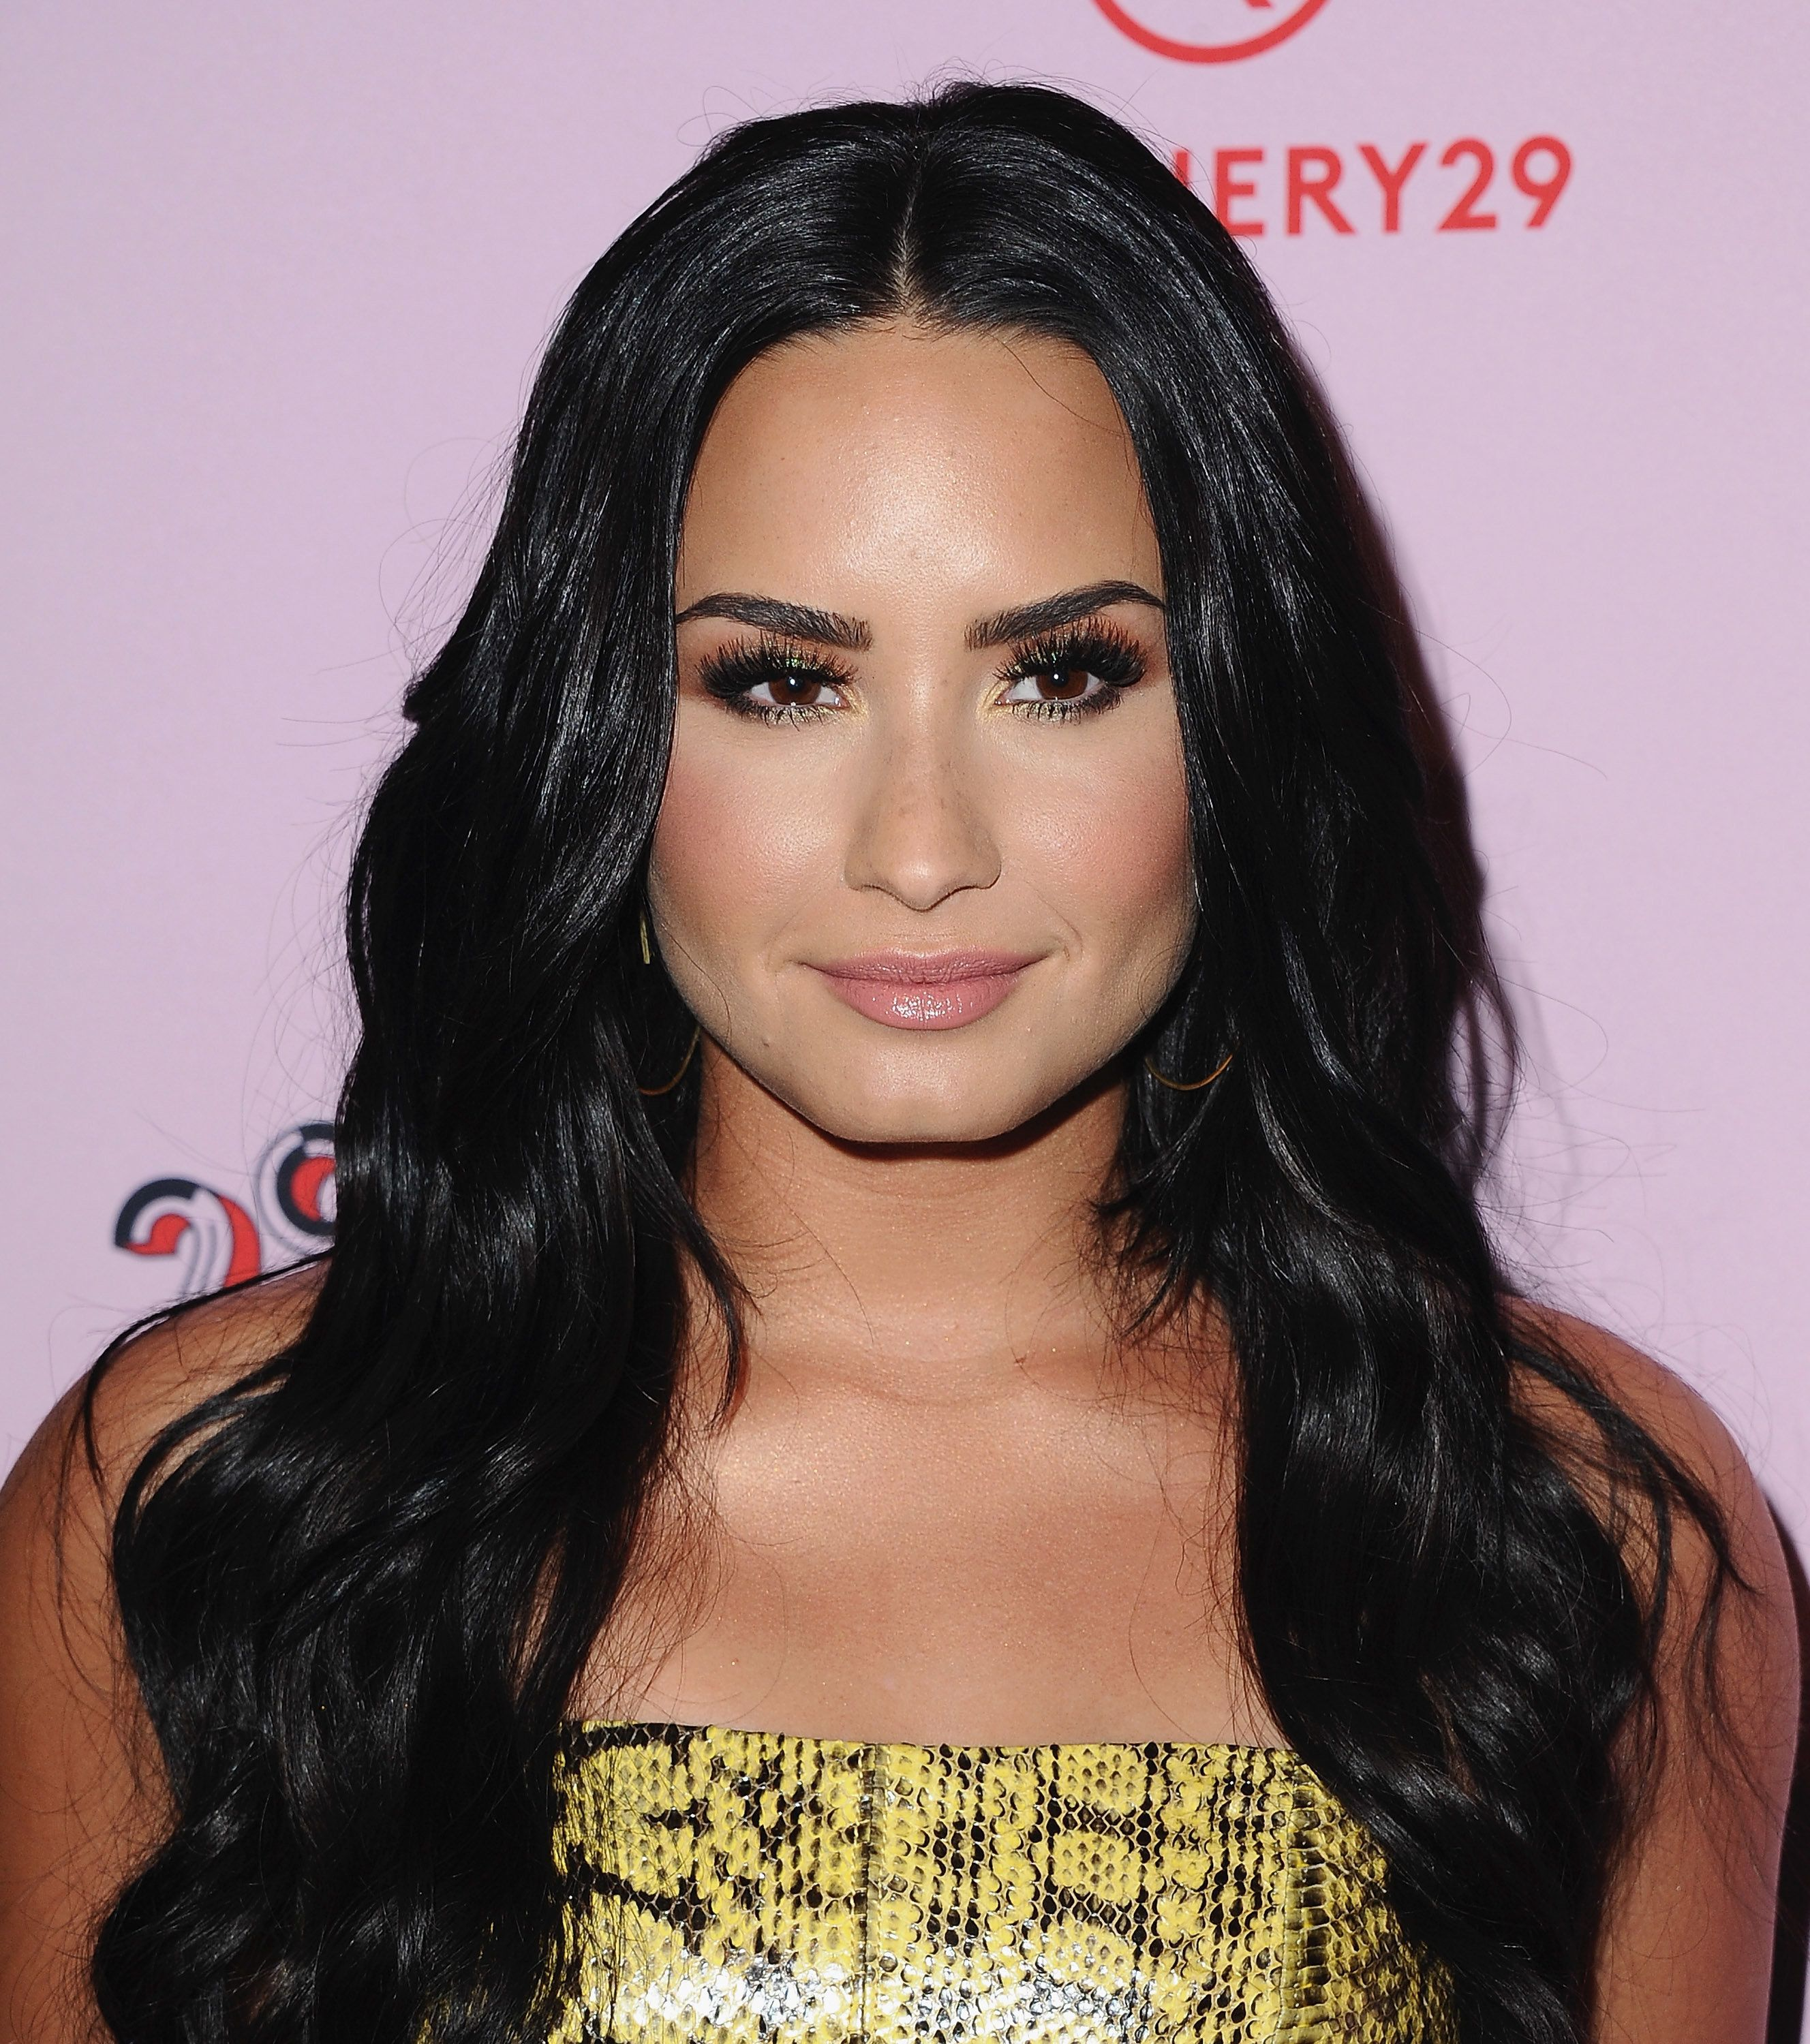 Demi Lovato Could Have Died from Apparent Overdose, Sources Say